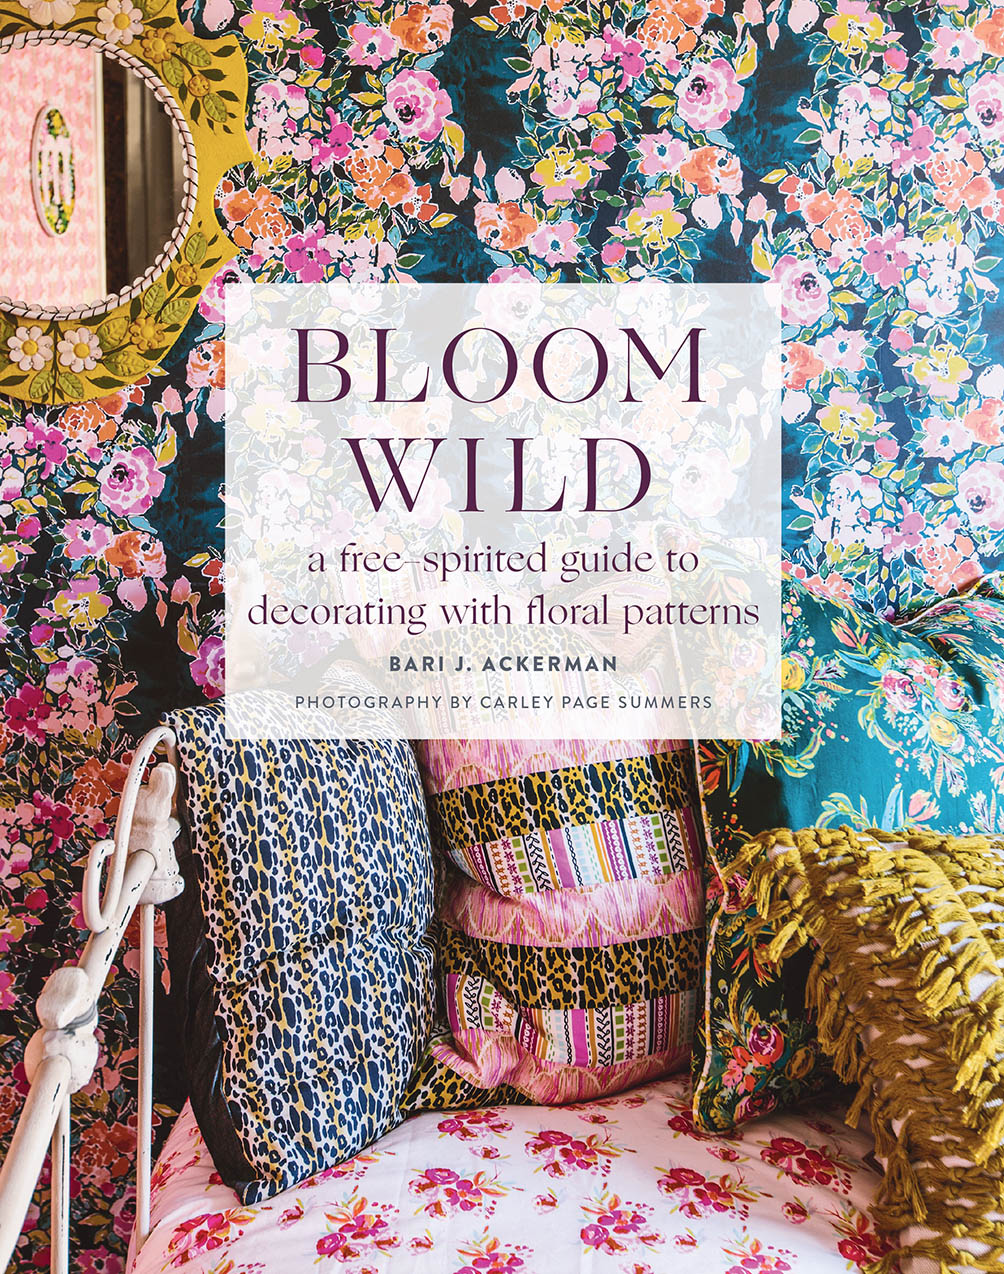 Bloom Wild: a free-spirited guide to decorating with floral patterns